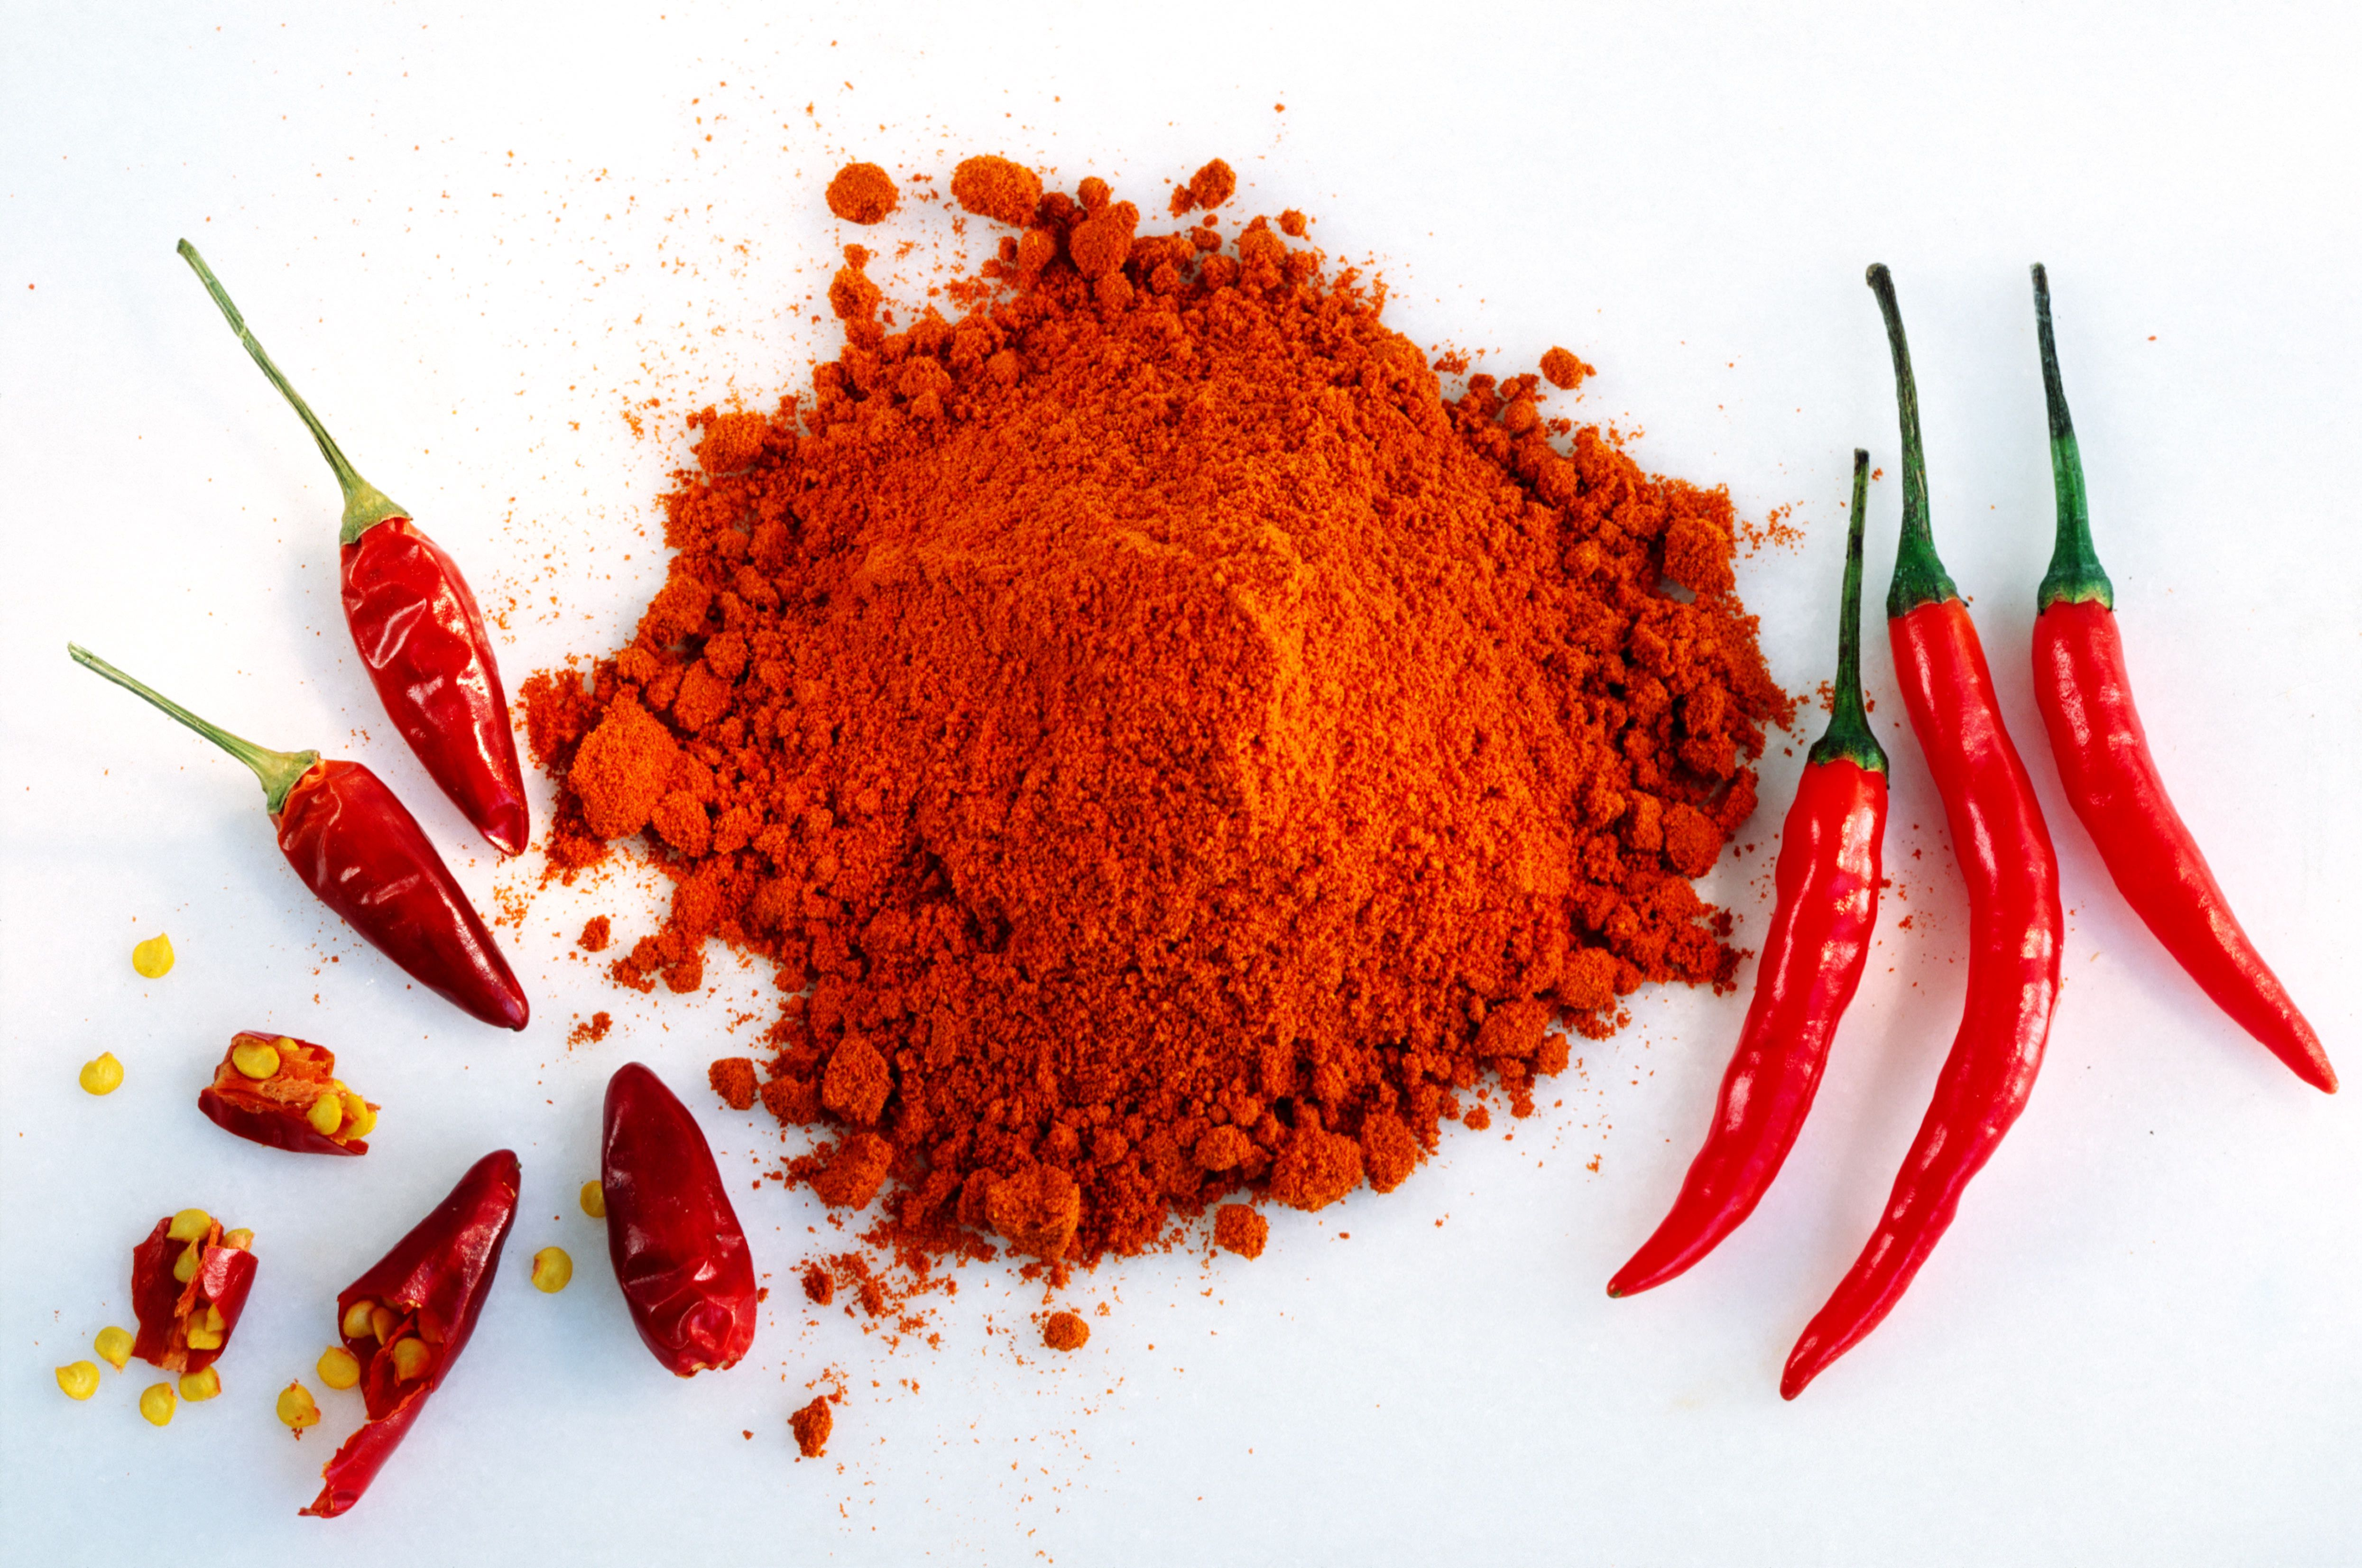 Red chilli and powder